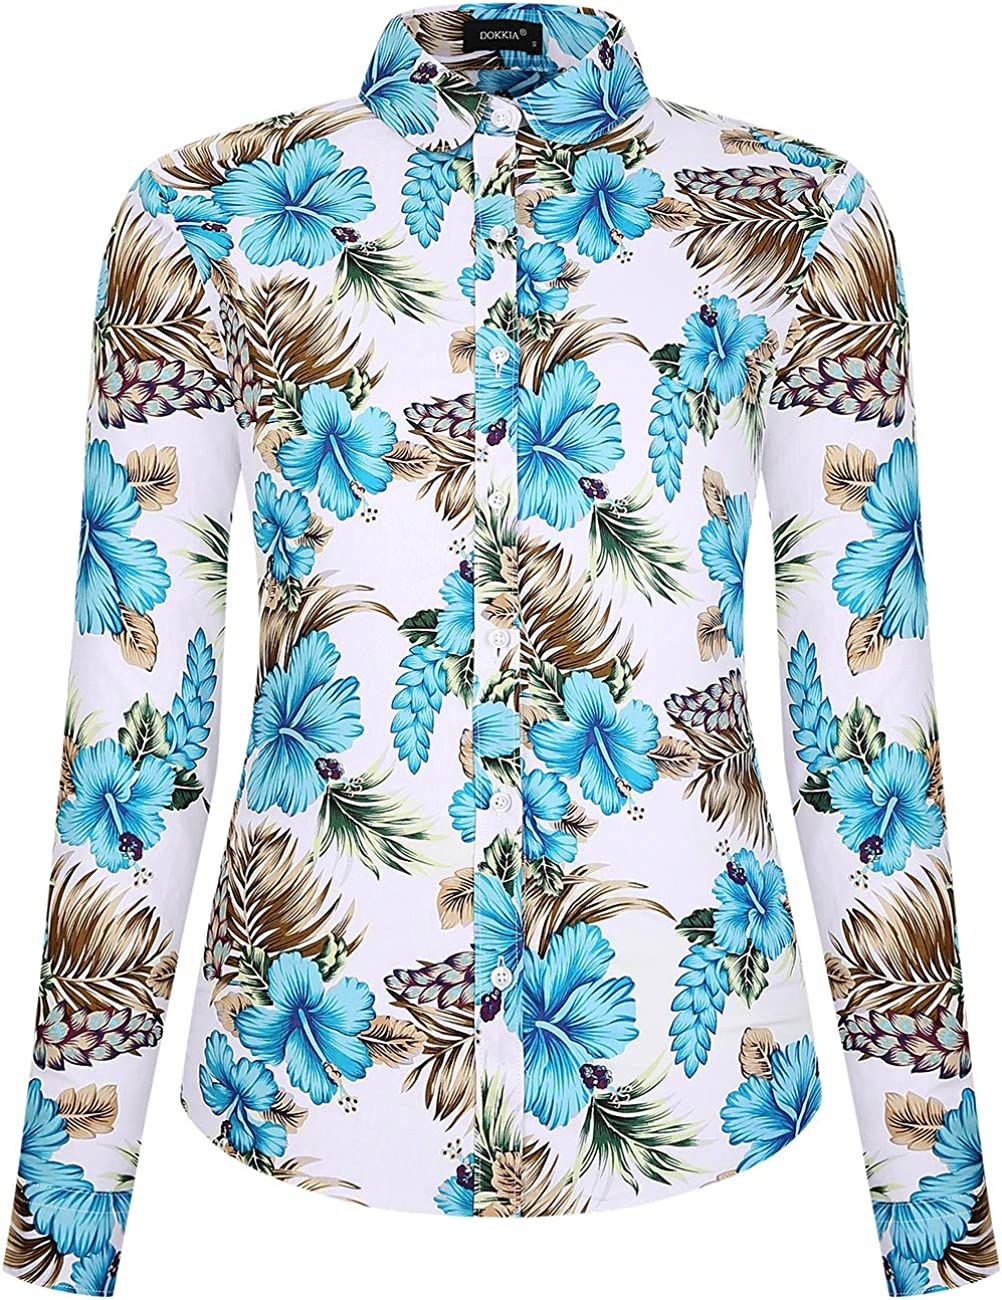 DOKKIA Women's Tops Shirts Casual Long Sleeve Floral Cotton Work Button Down Dress Blouses